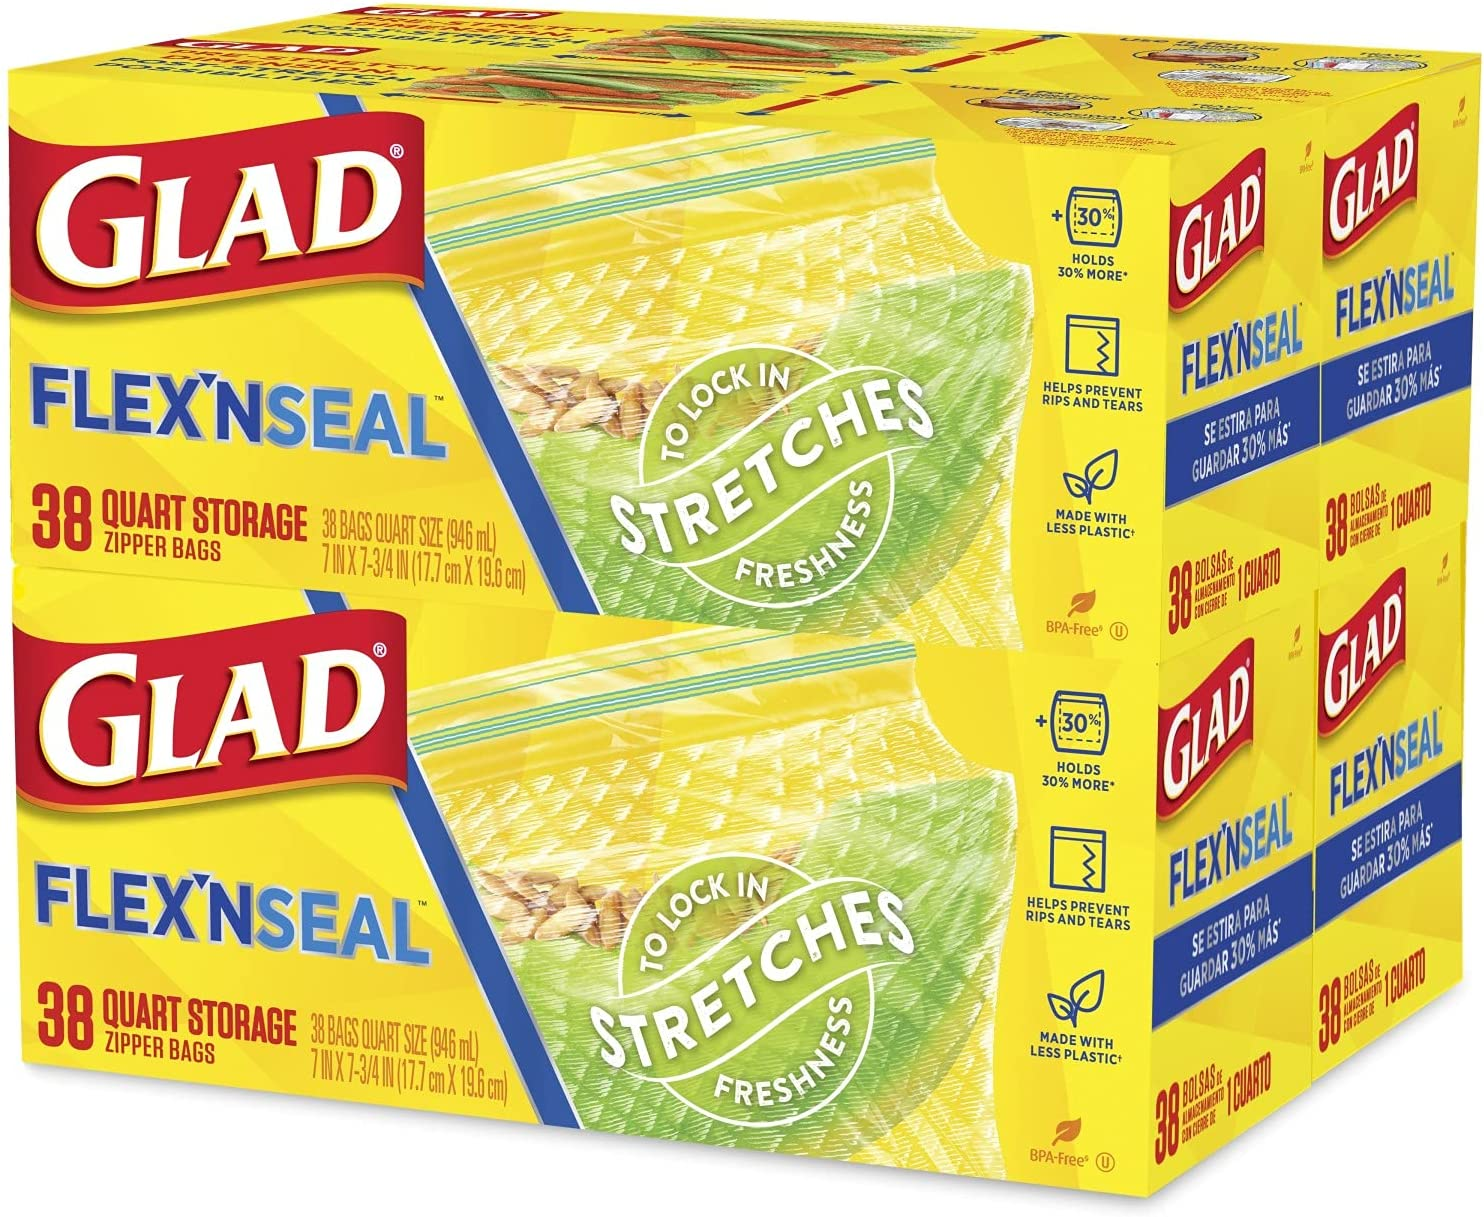 Glad FLEXN Seal Food Storage Easy-to-use Plastic Pa Quart - 38 5 ☆ very popular Count Bags